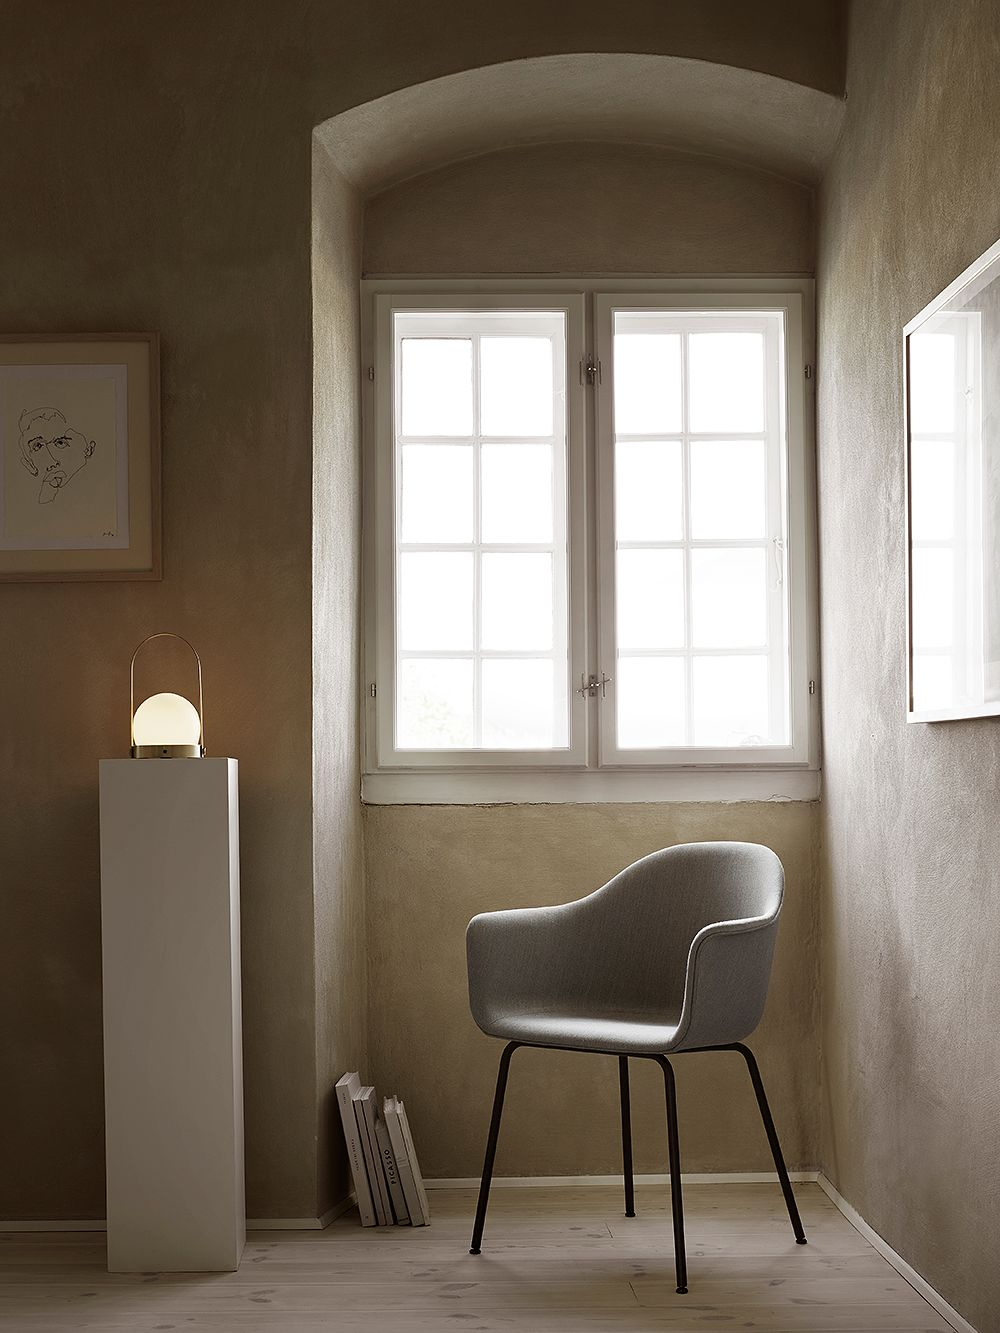 The Carrie lamp by Menu in a reading nook.